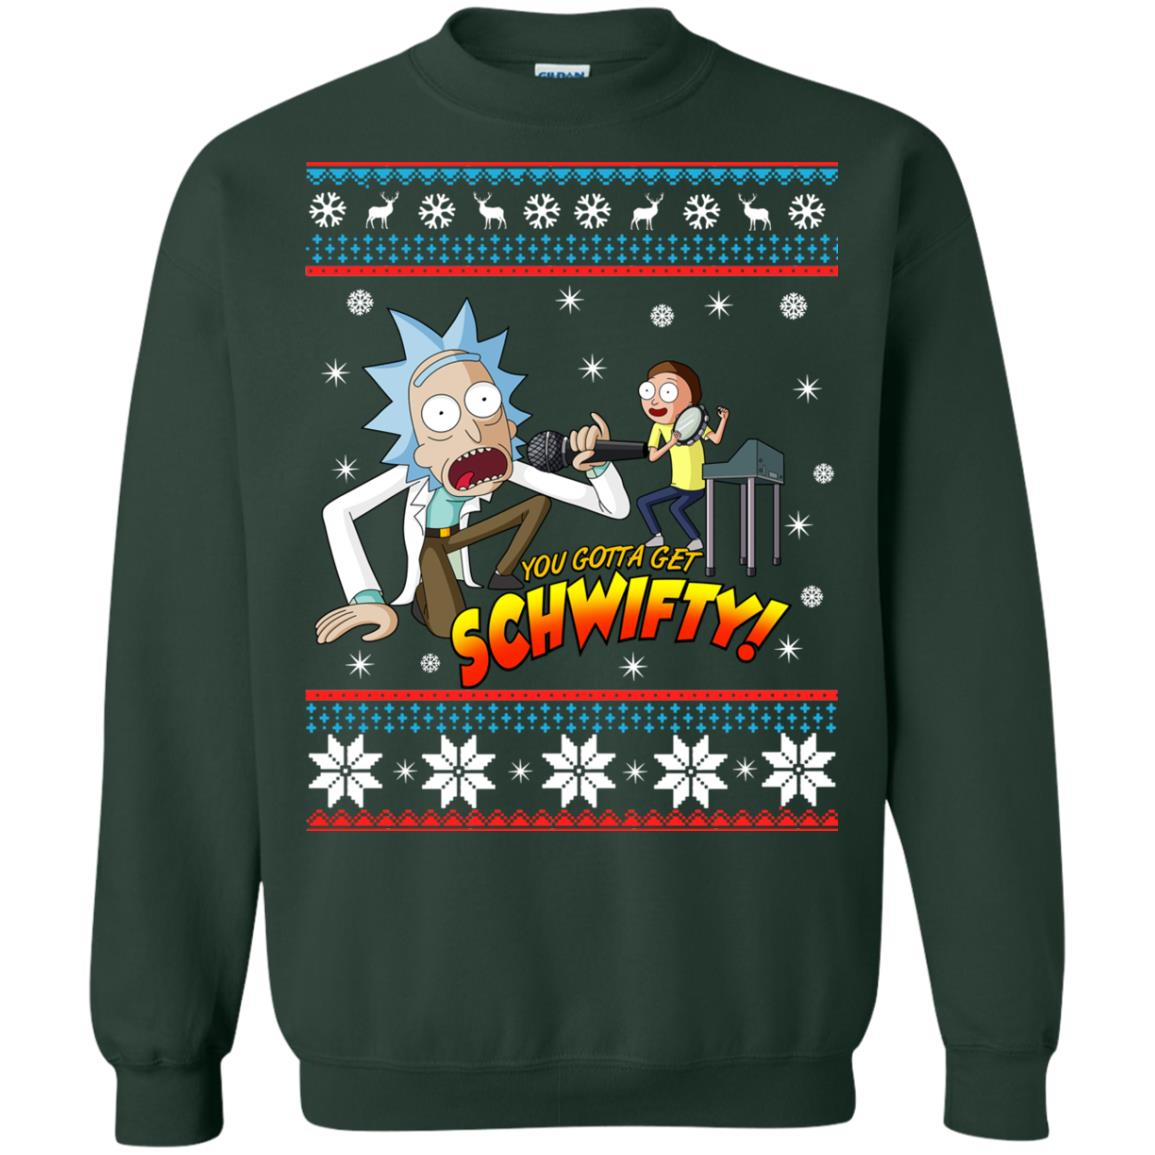 image 2418 - You gotta get Schwifty Ugly Christmas sweater, hoodie